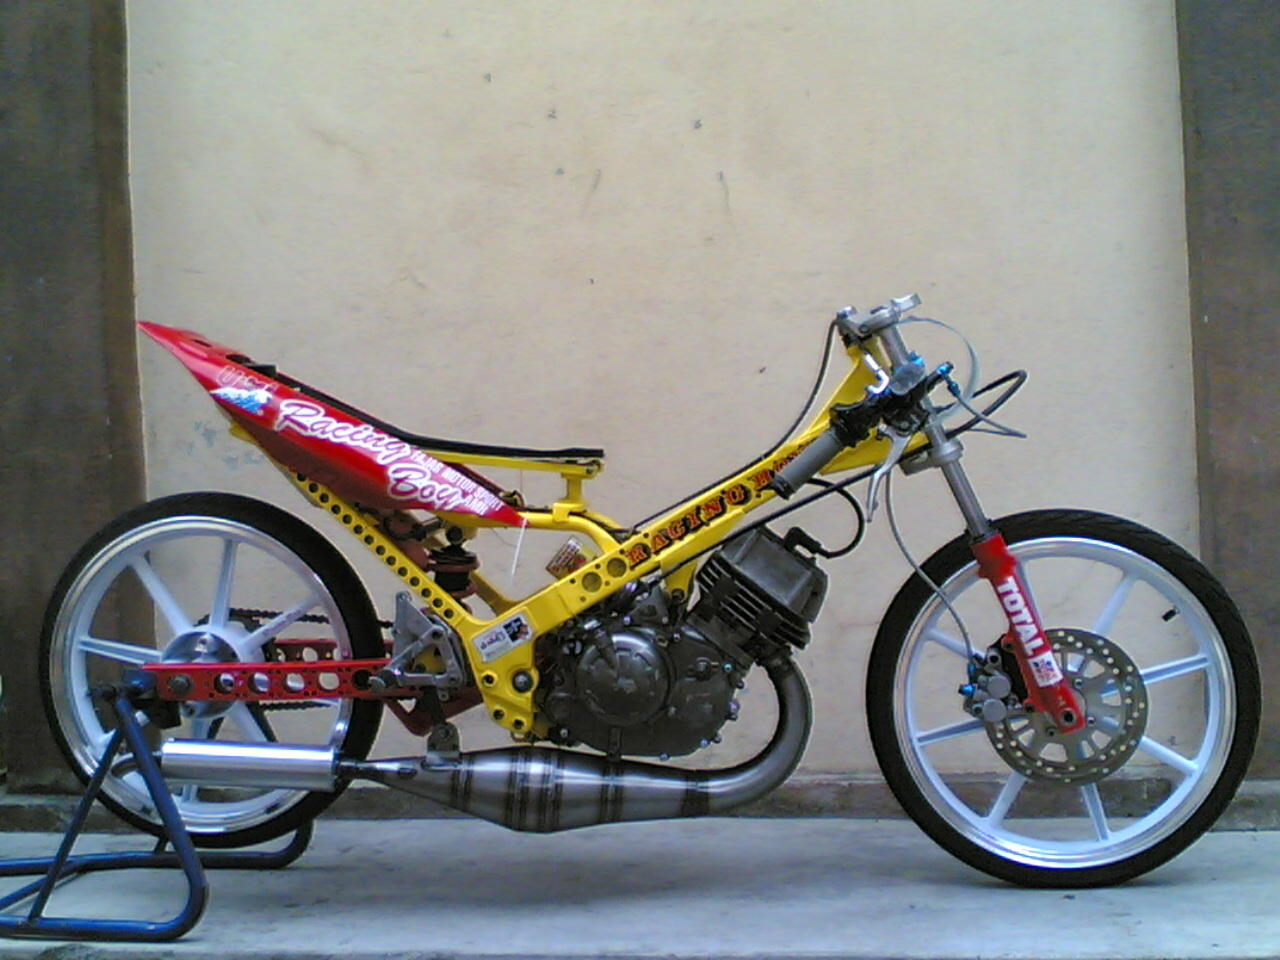 Yamaha 125Z http://below300cc.blogspot.com/2010/12/yamaha-125z-125cc-photo-collection.html